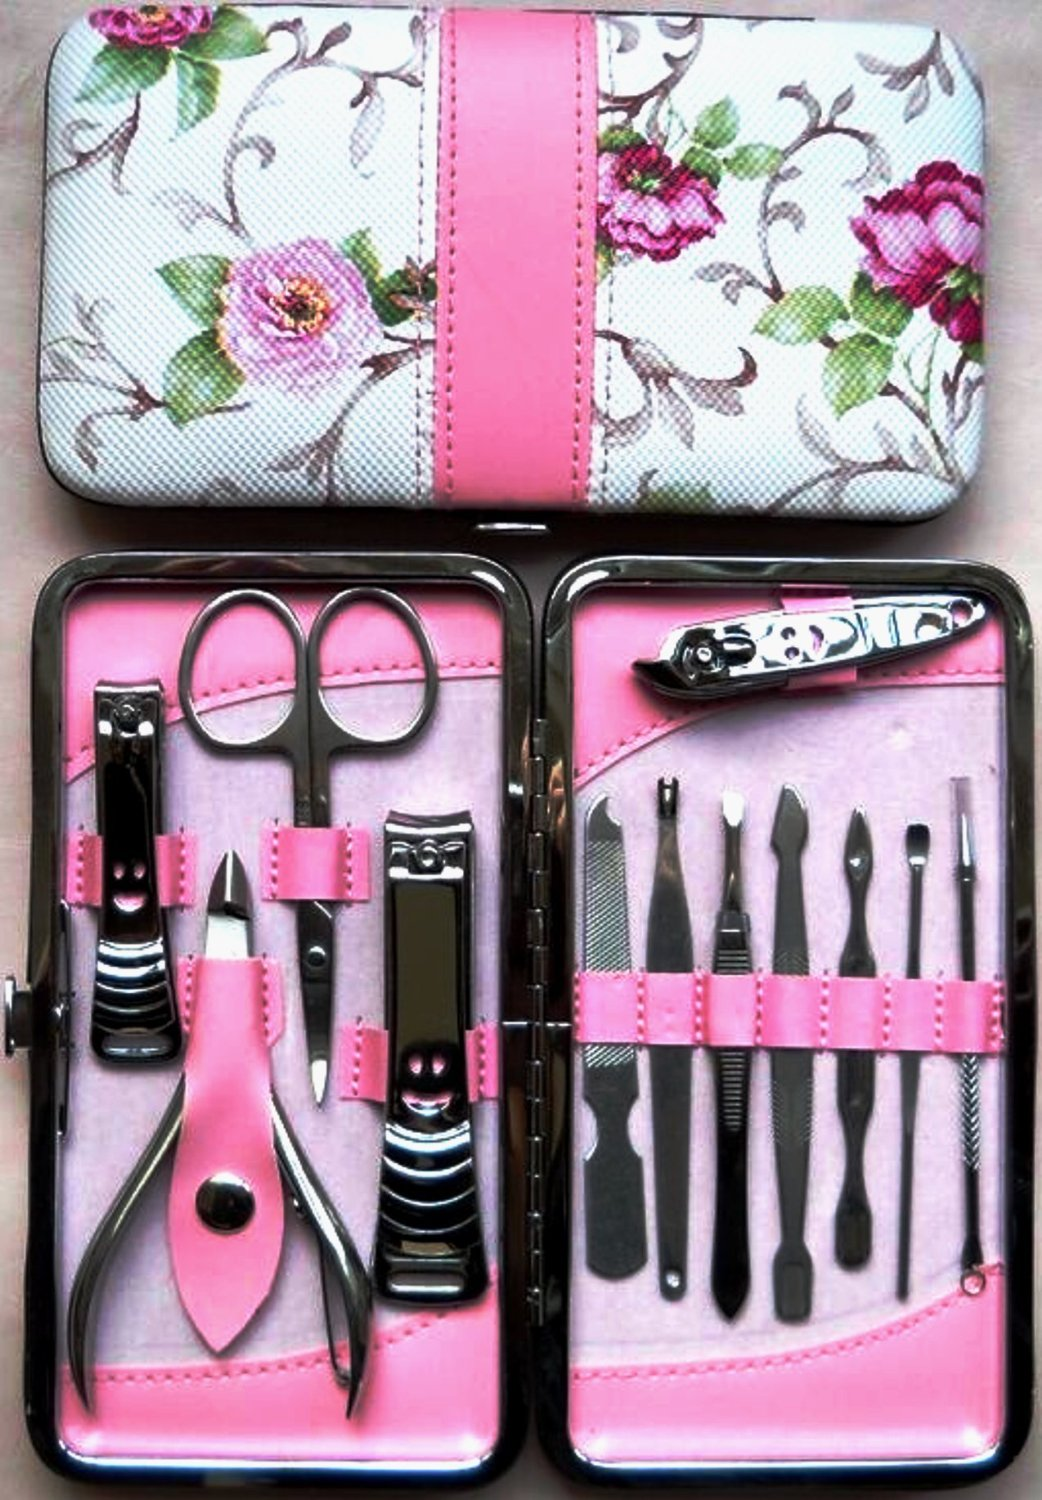 12 Tool Kits that are Guaranteed to Make Your Life Easier   www.onecrazyhouse.com